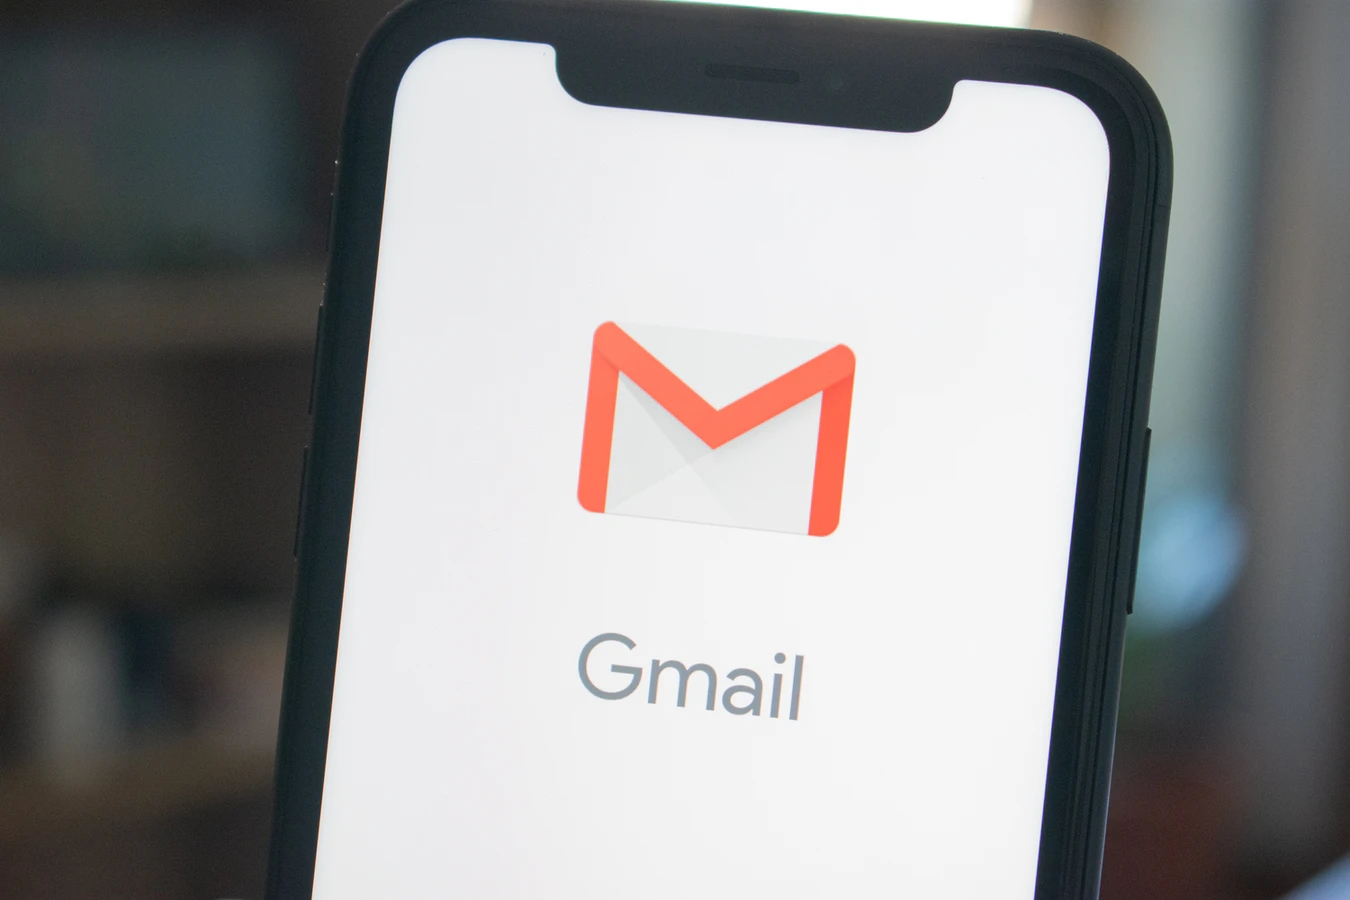 Gmail Google android